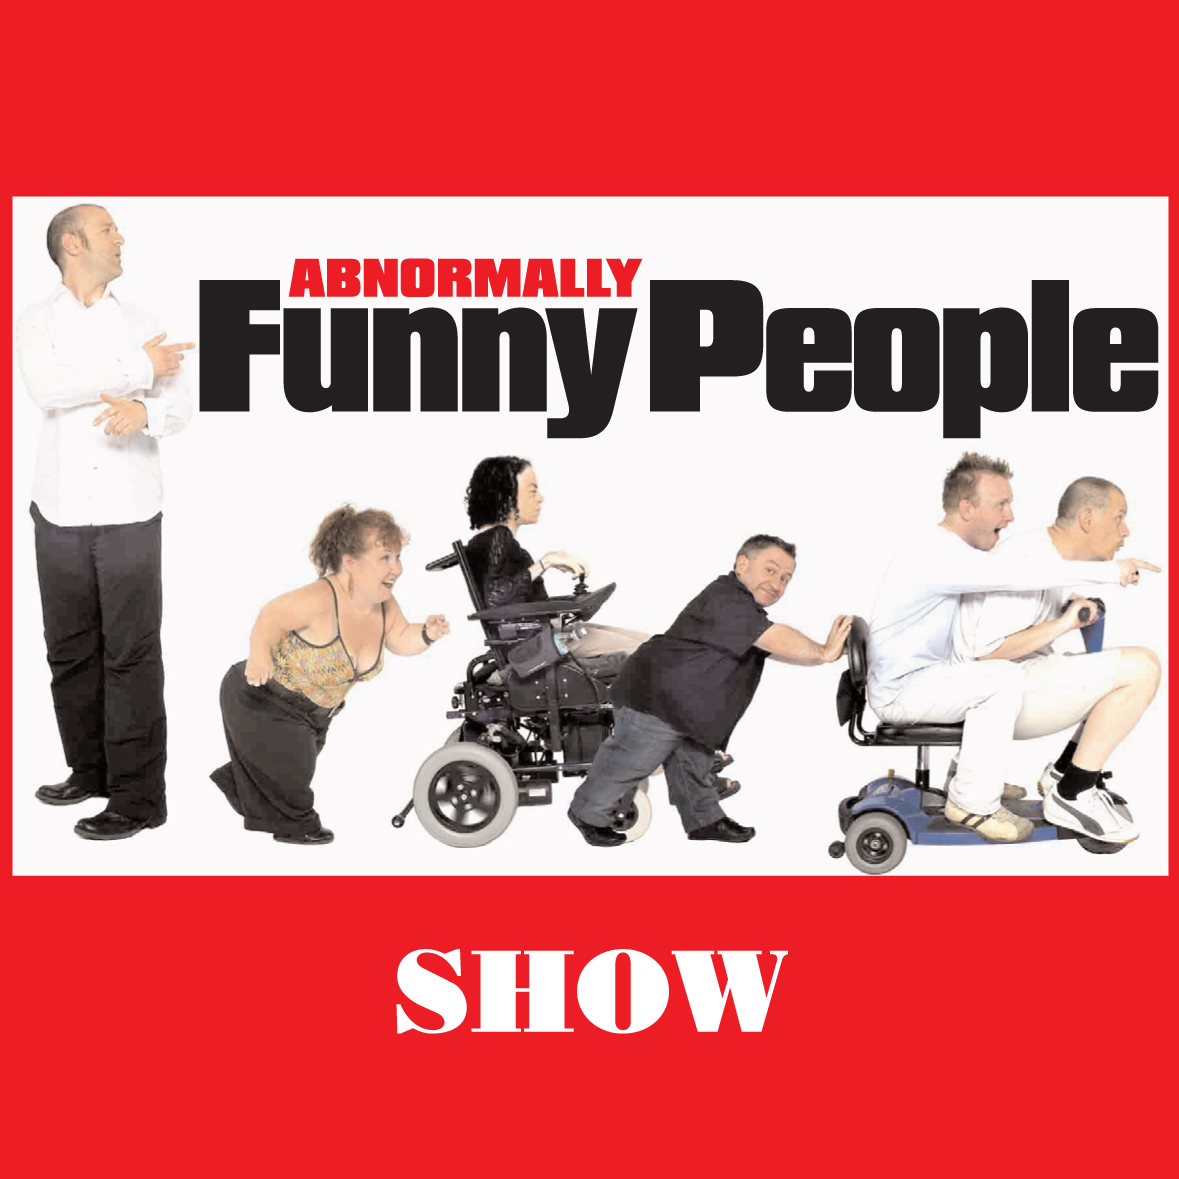 Image: Abnormally Funny People Podcast Logo